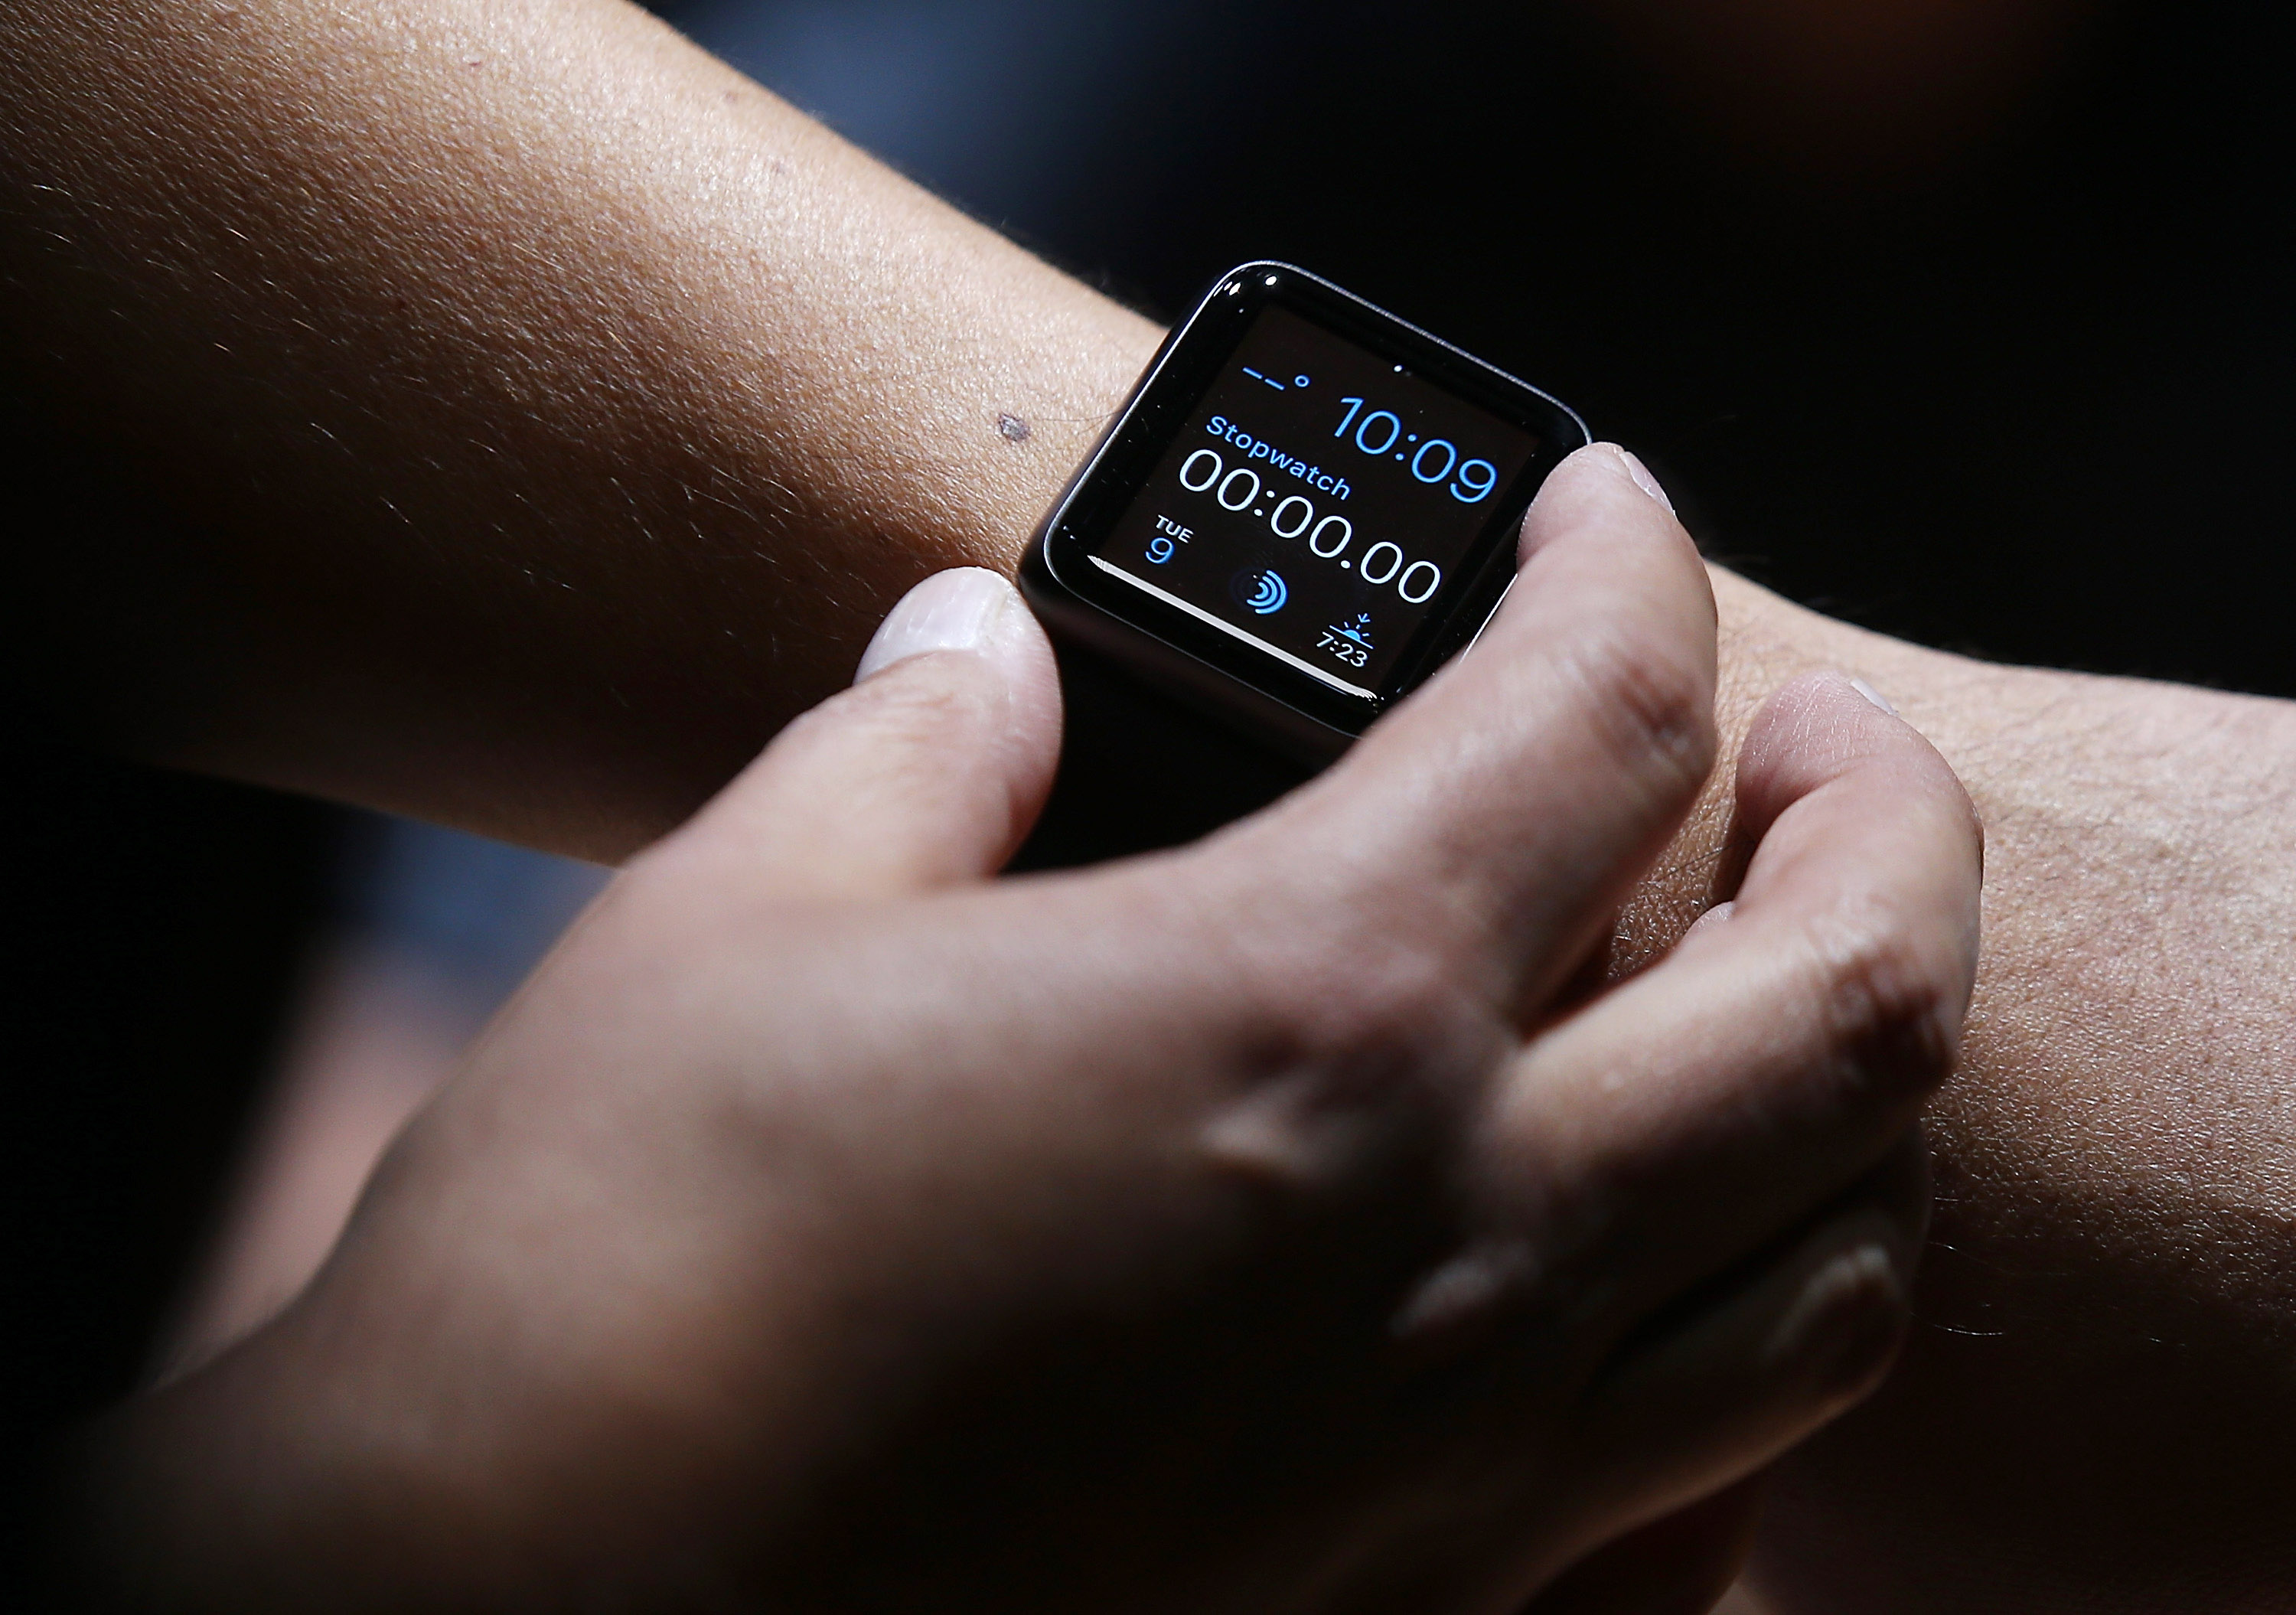 An attendee inspects the new Apple Watch during an Apple special event at the Flint Center for the Performing Arts on September 9, 2014 in Cupertino, California.